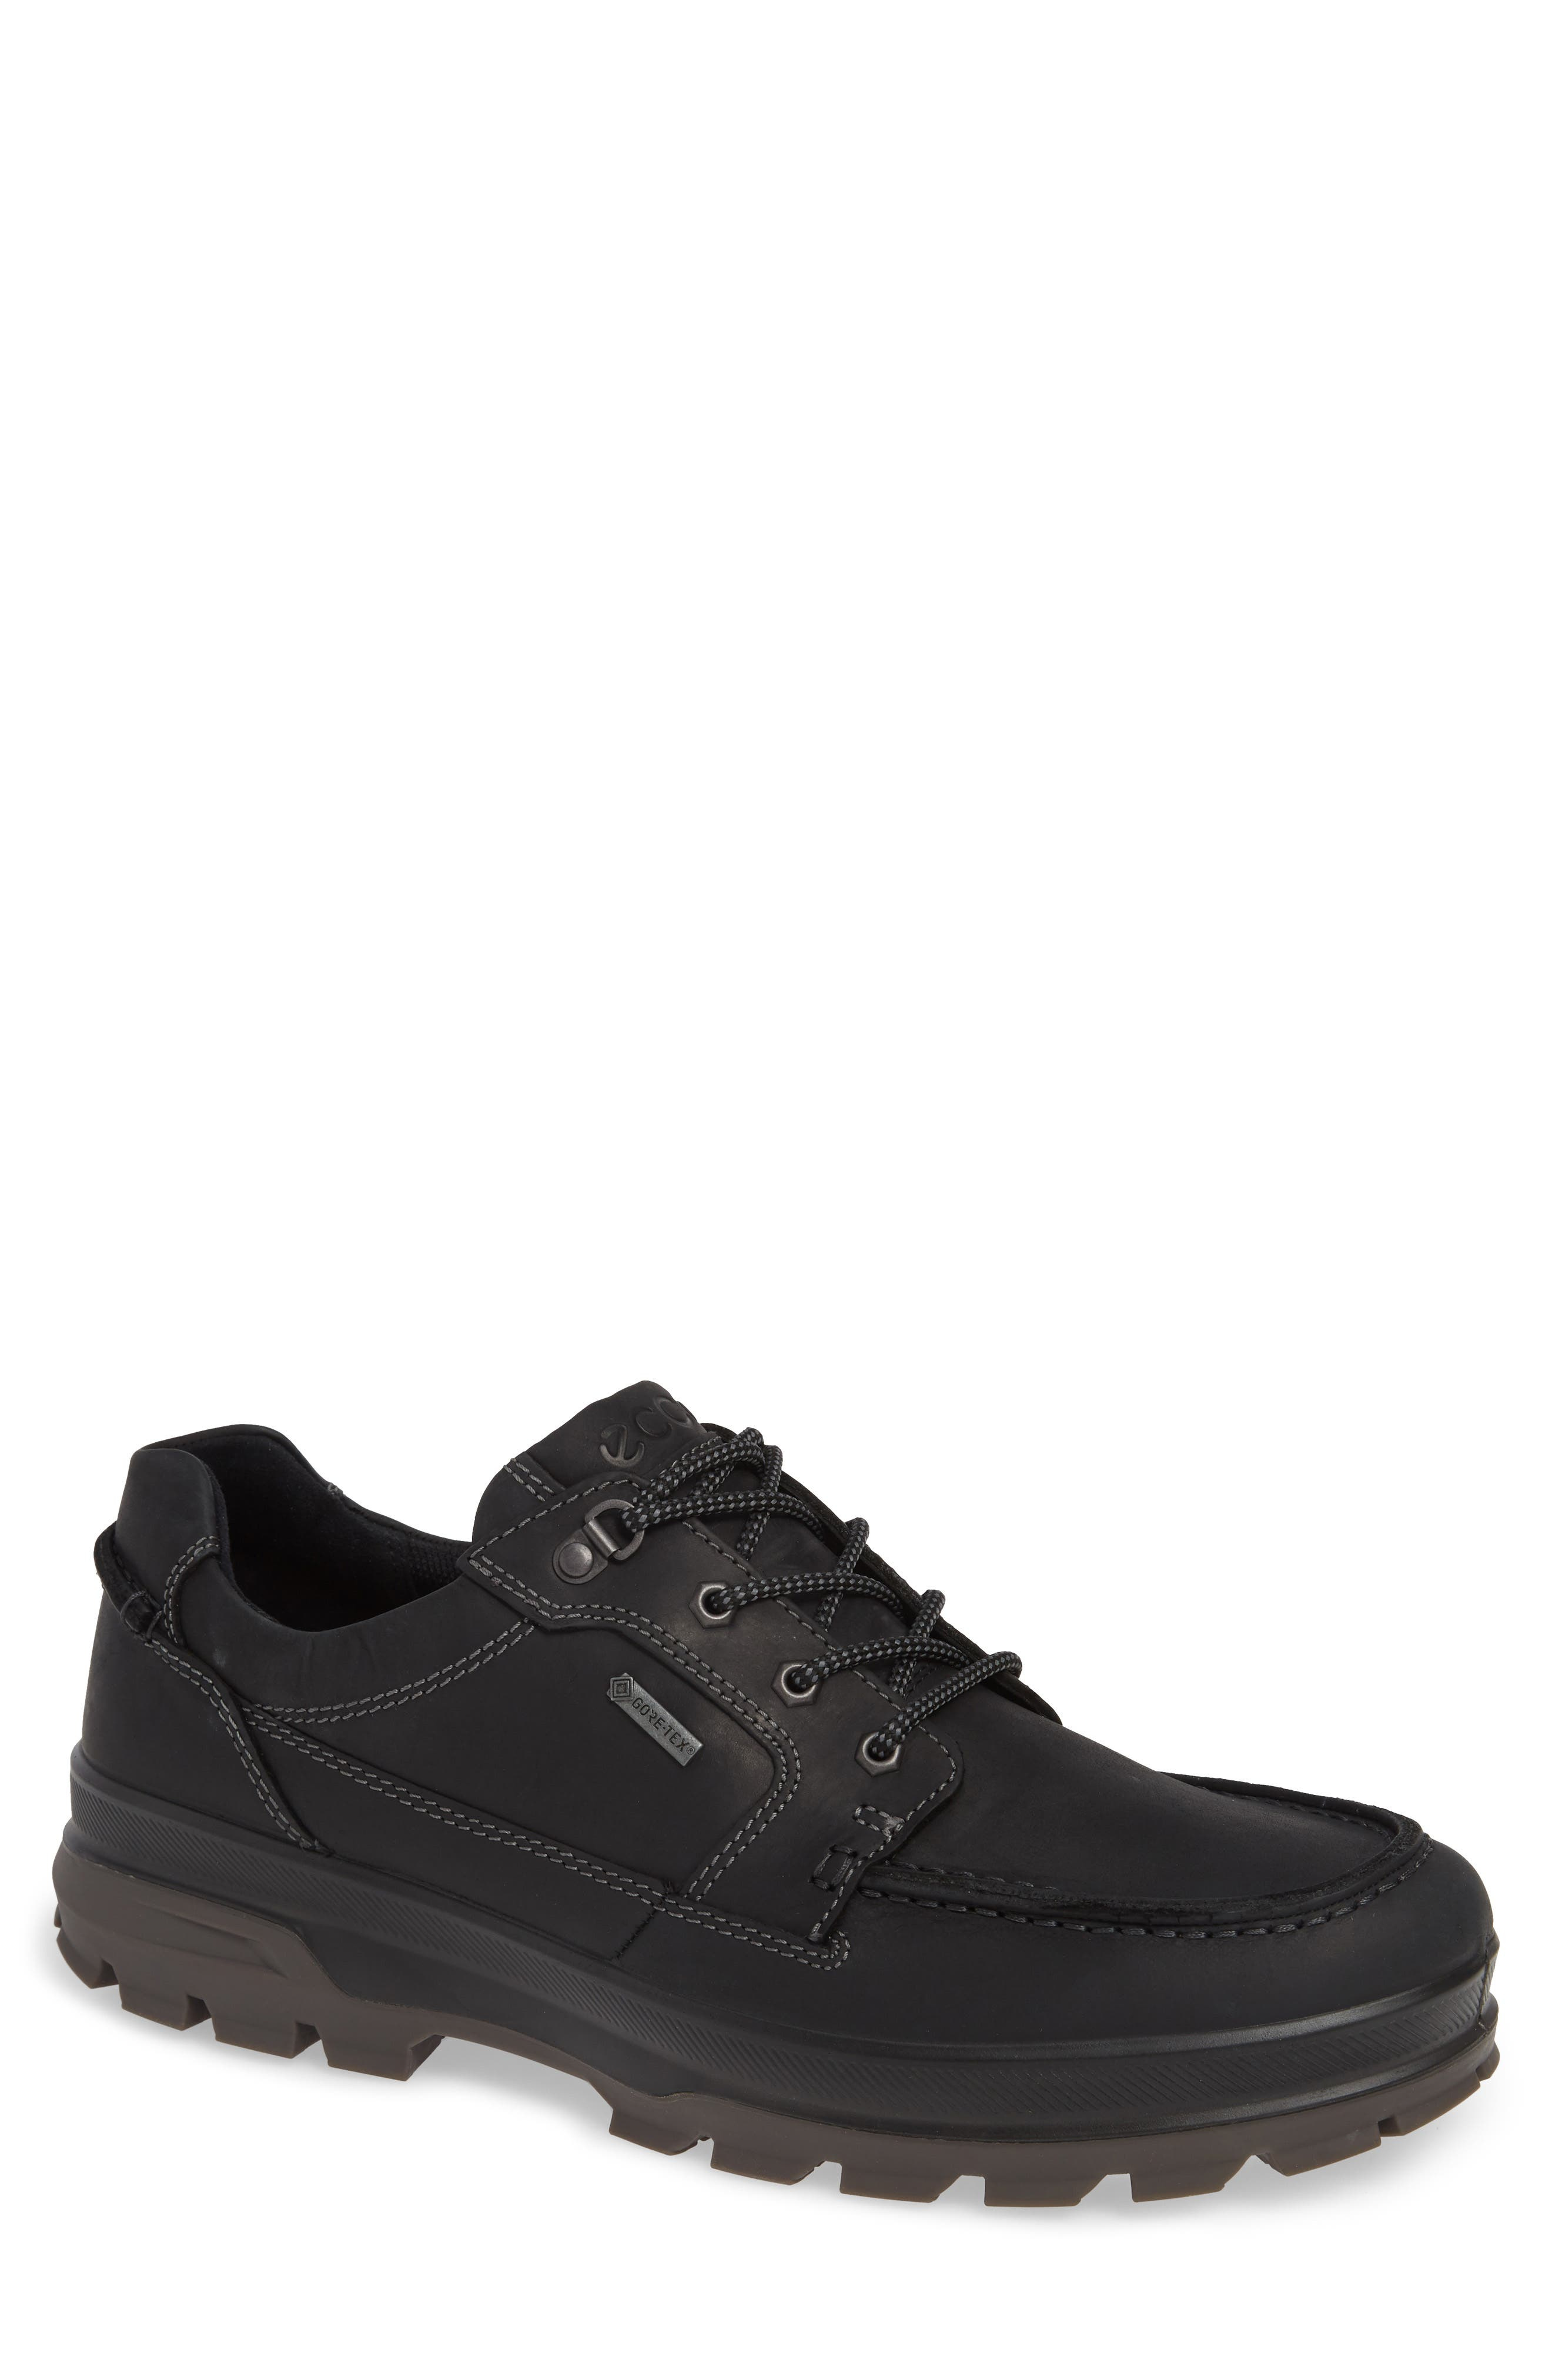 ECCO, Rugged Track Low Gore-Tex<sup>®</sup> Oxford, Main thumbnail 1, color, 003